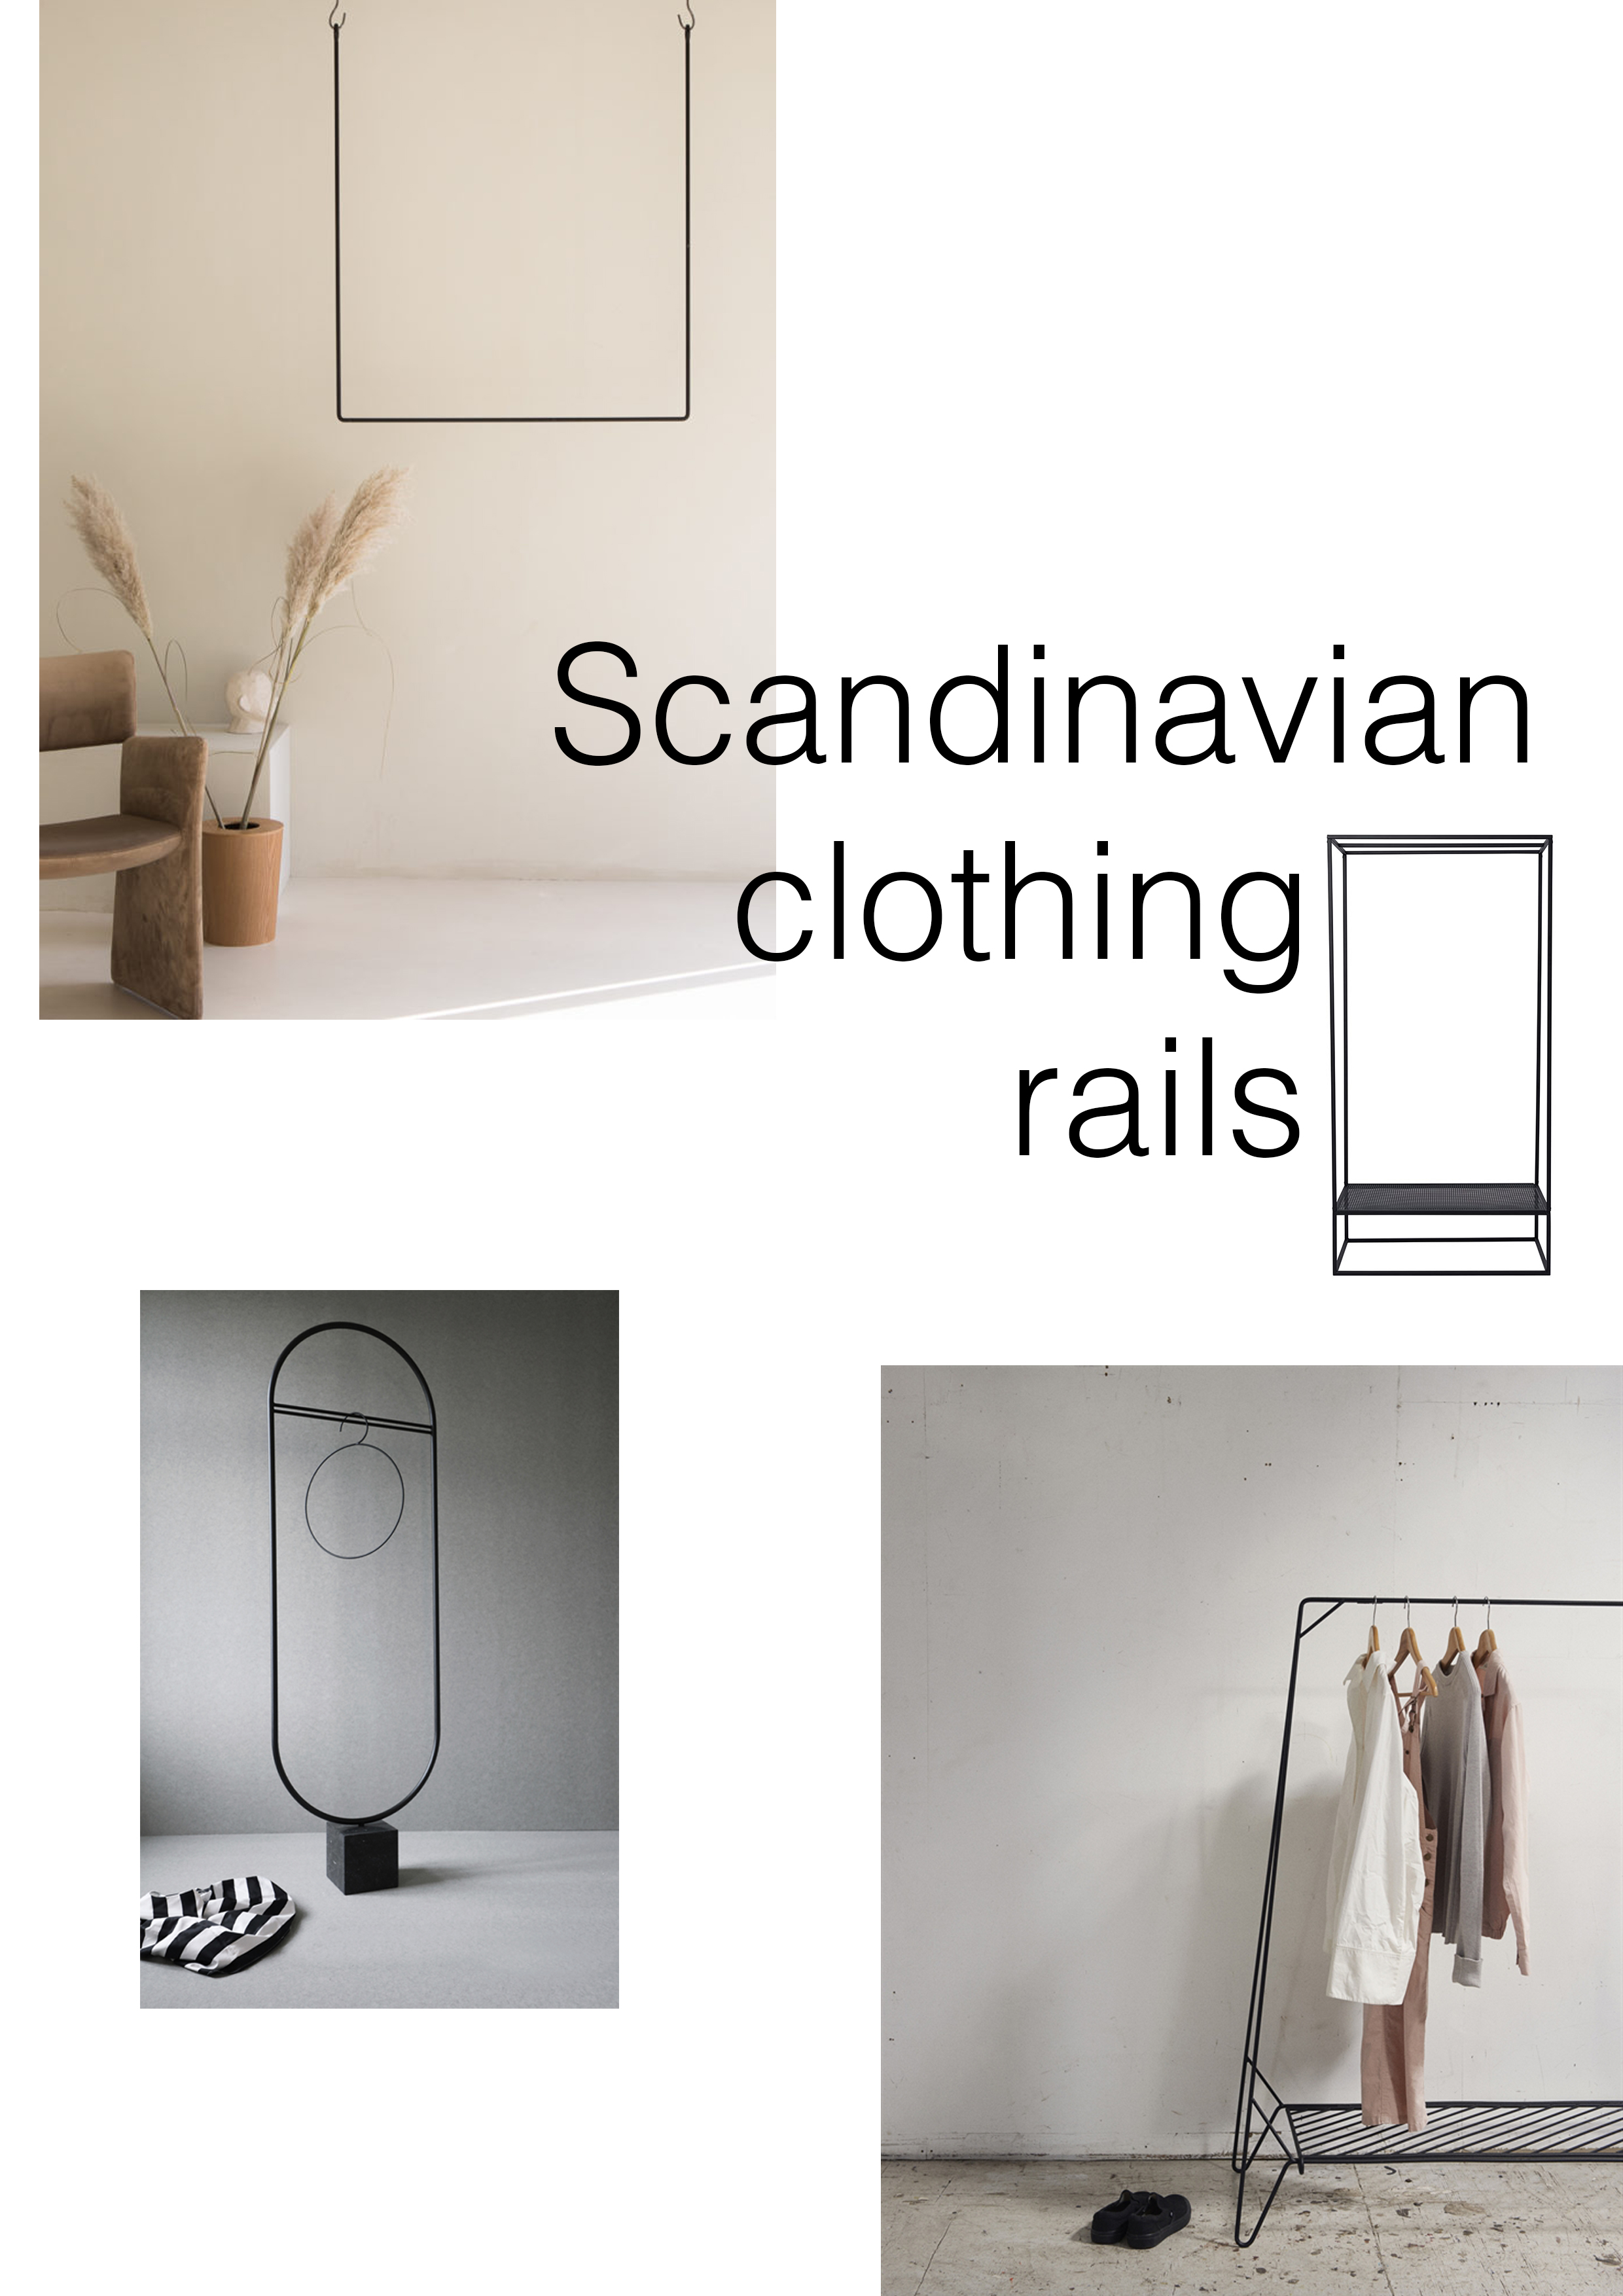 Scandinavian clothing rails